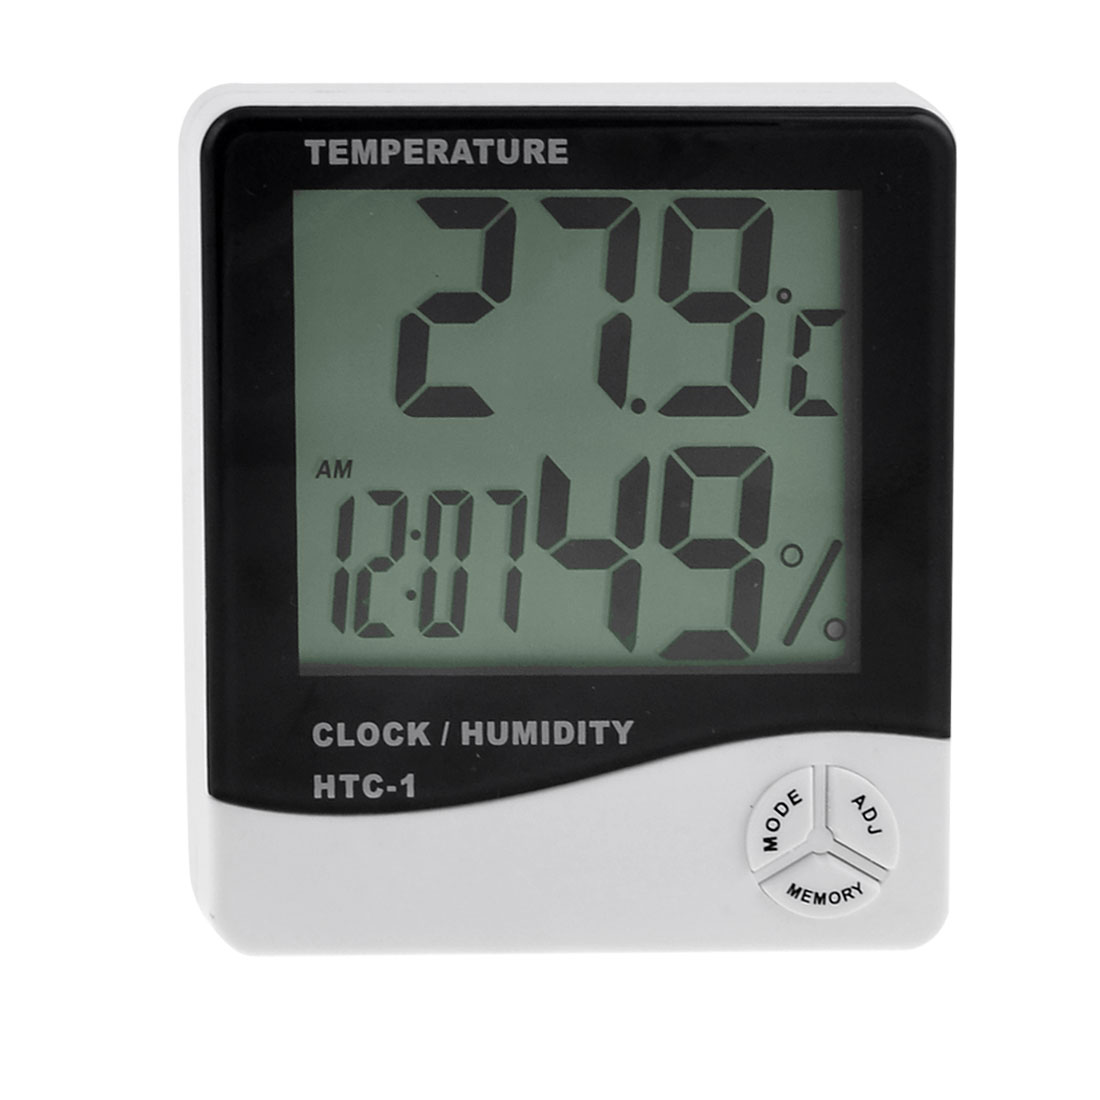 HTC-1 Digital LCD Display Max-Min Temperature Humidity Meter Hygrometer Clock